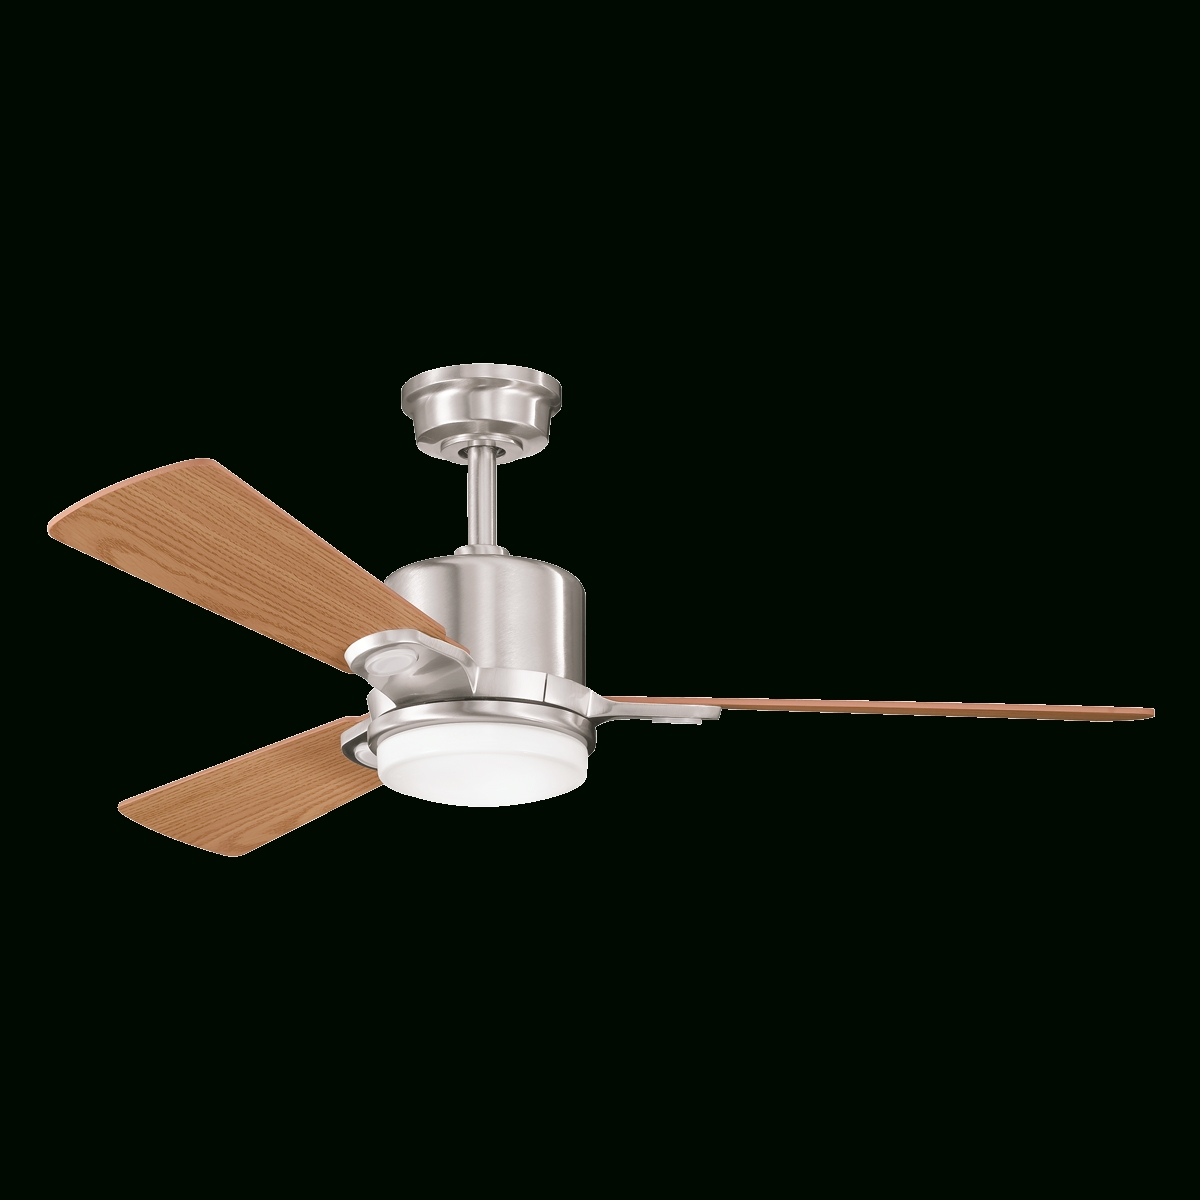 48 Inch Celino Contemporary Fan Bss Throughout Well Liked 48 Inch Outdoor Ceiling Fans (View 2 of 20)